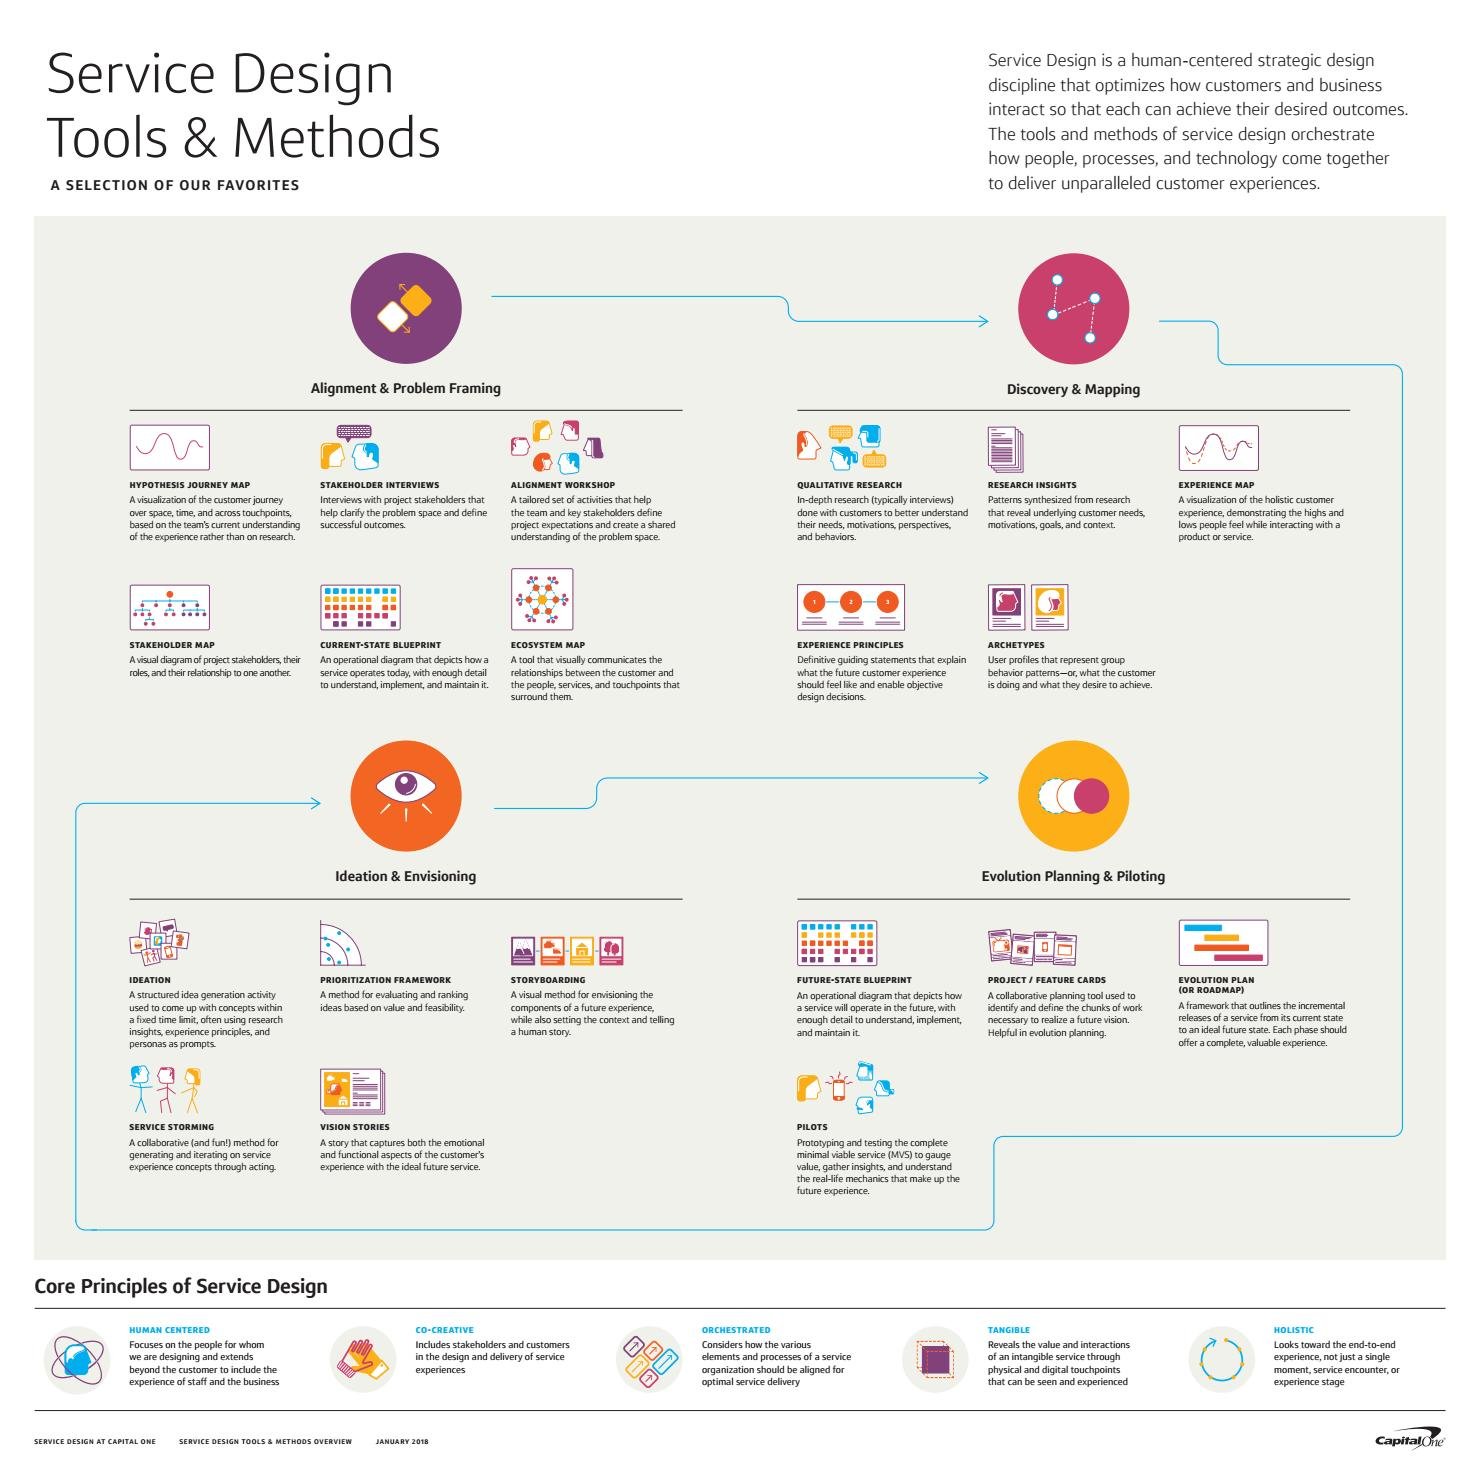 Service design tools and methods overview poster by capital one service design tools and methods overview poster by capital one design issuu malvernweather Gallery